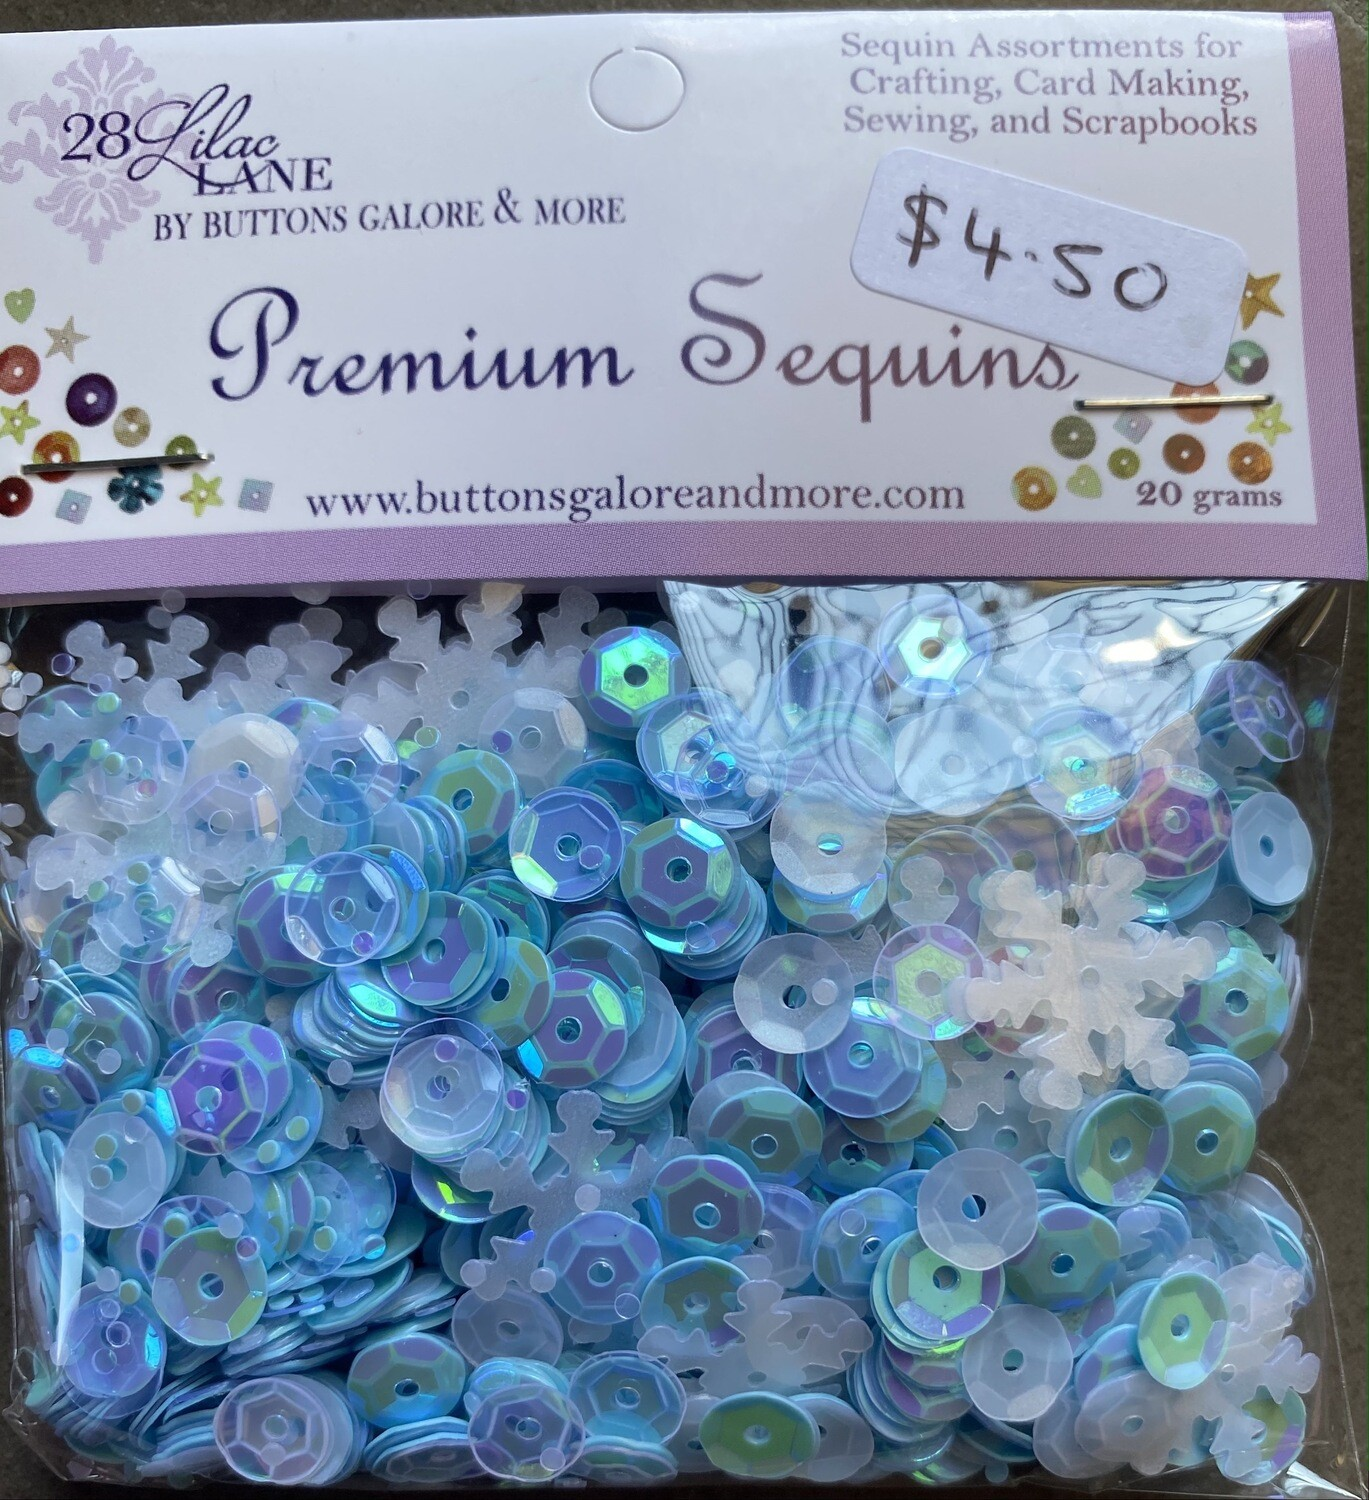 28 Lilac Lane Premium Sequins 20grams - assorted